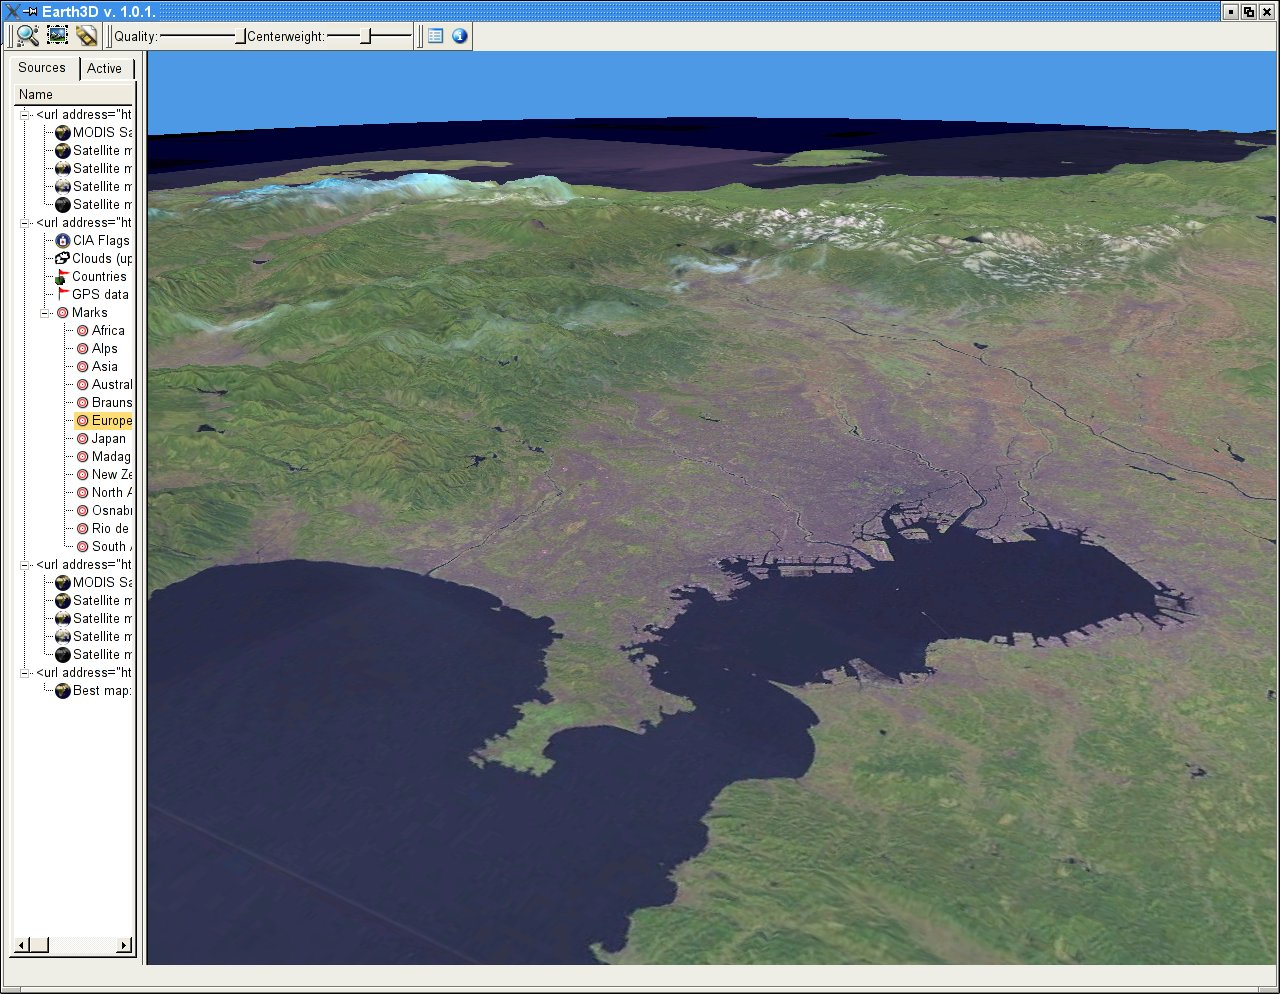 Welcome to earth3d landsat 7 images 100mpixel gumiabroncs Choice Image